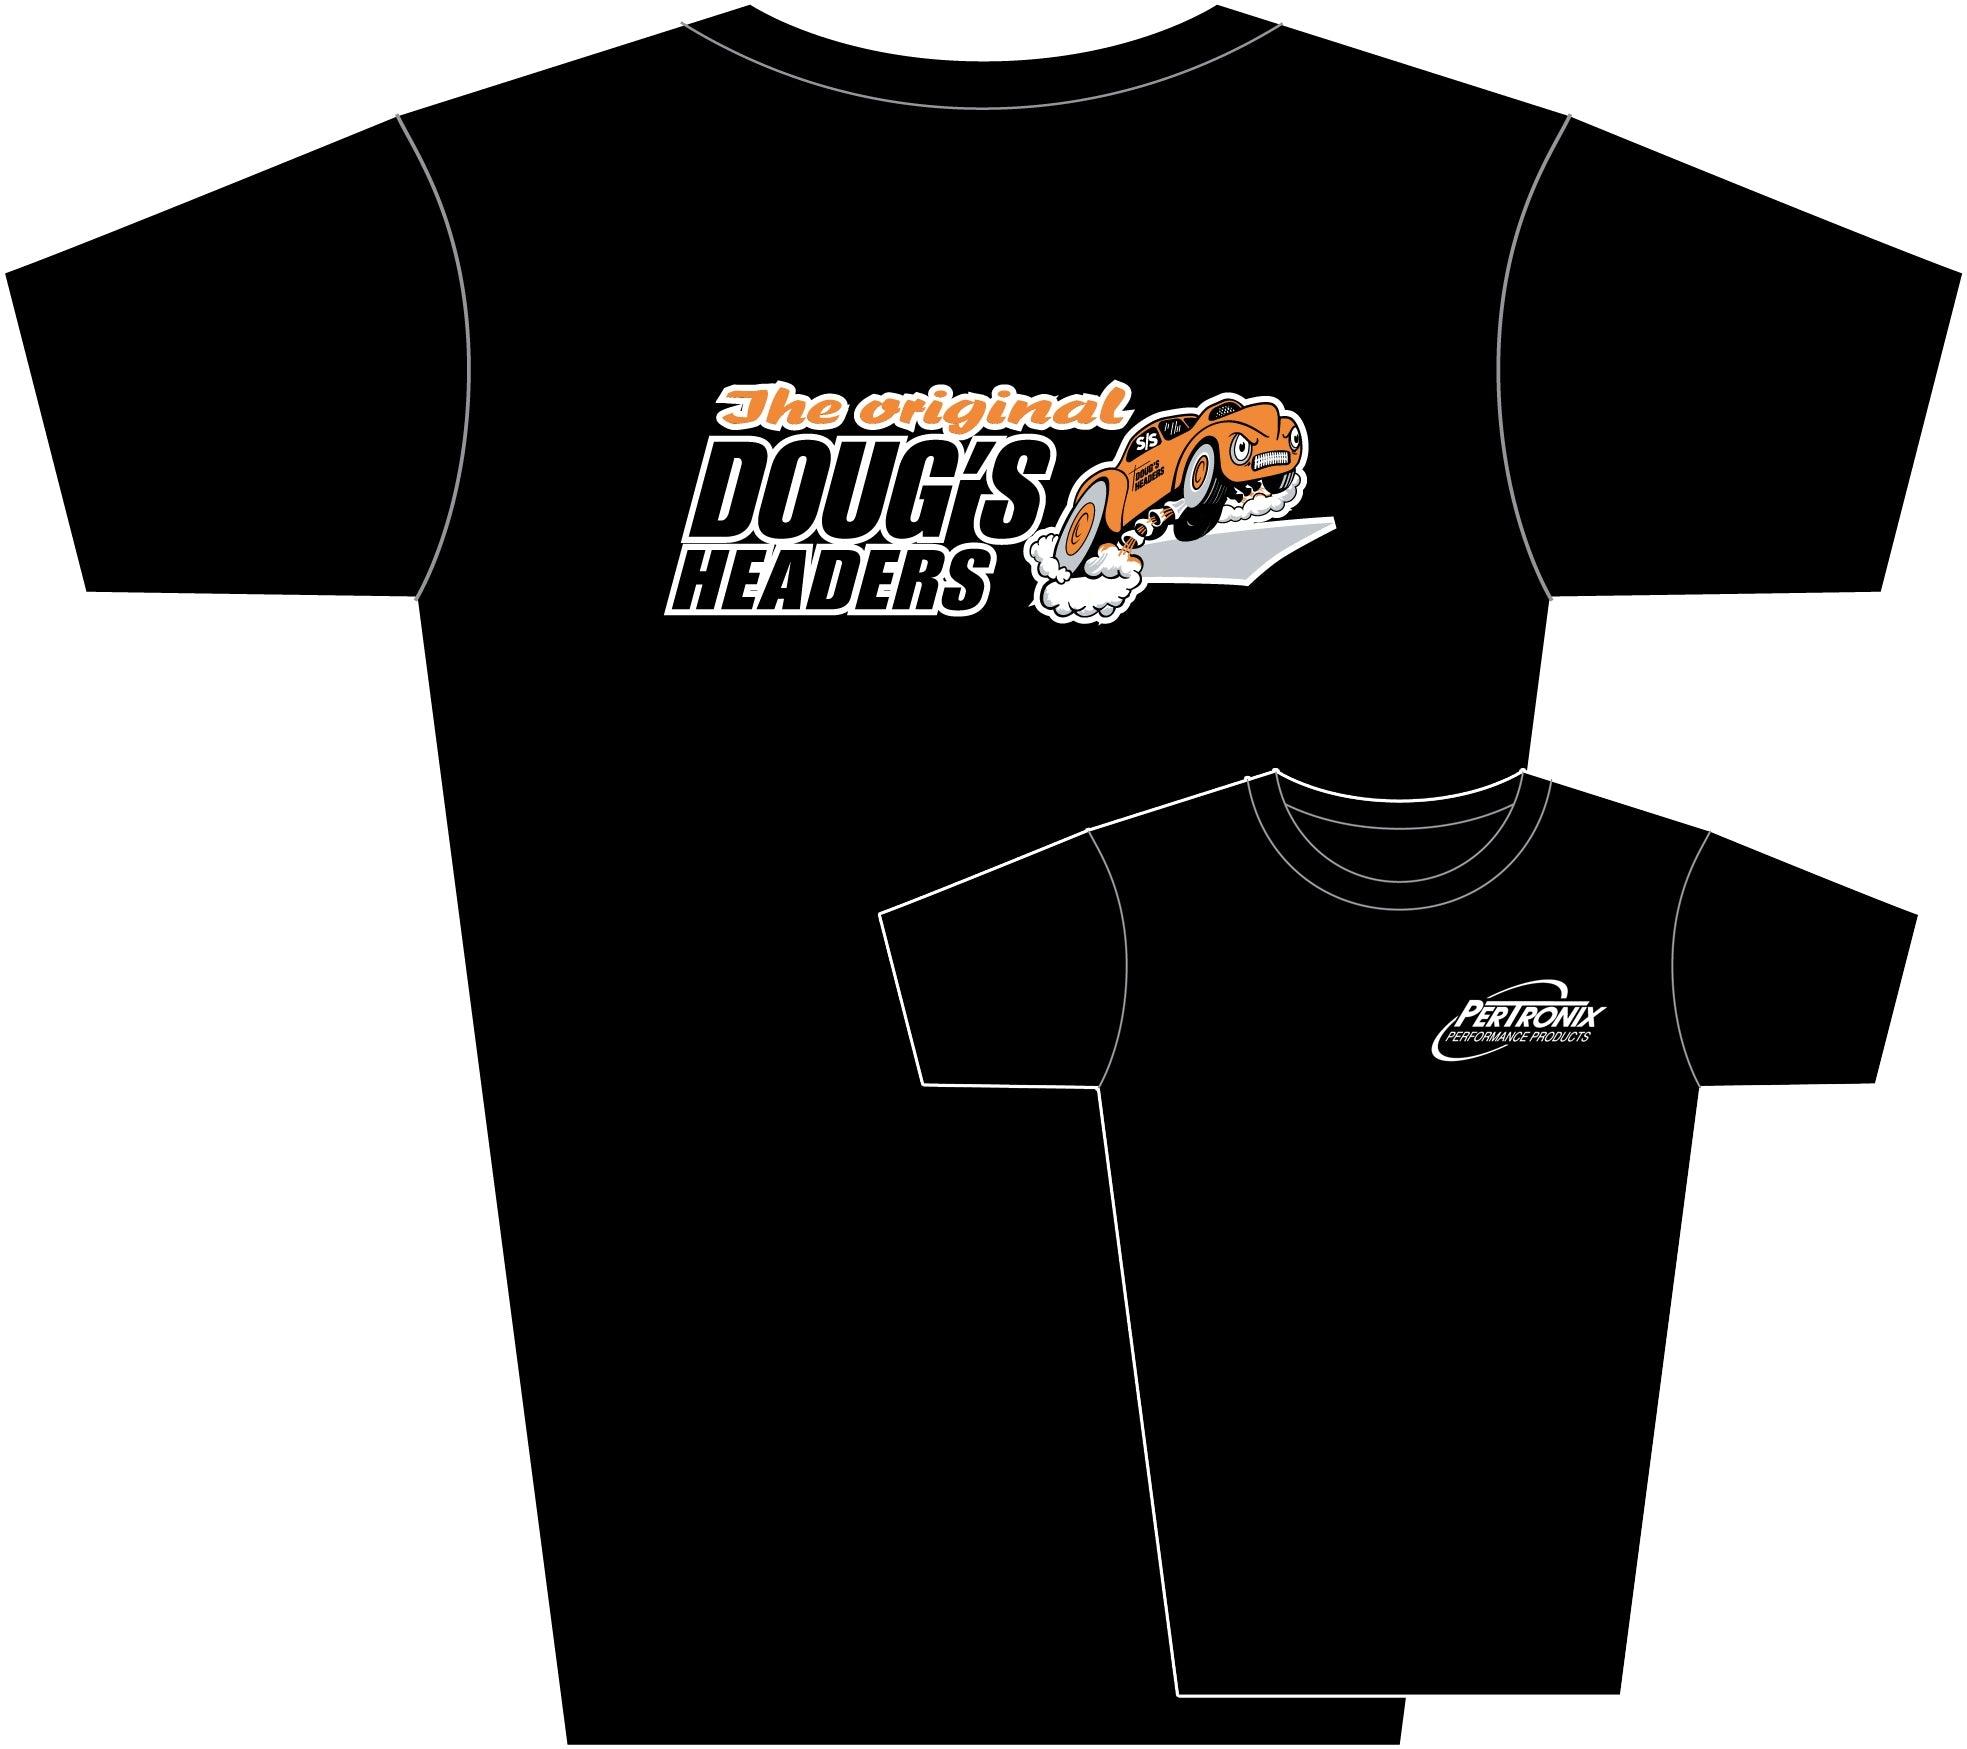 Doug's Headers TS203 Tee Shirt Black XL